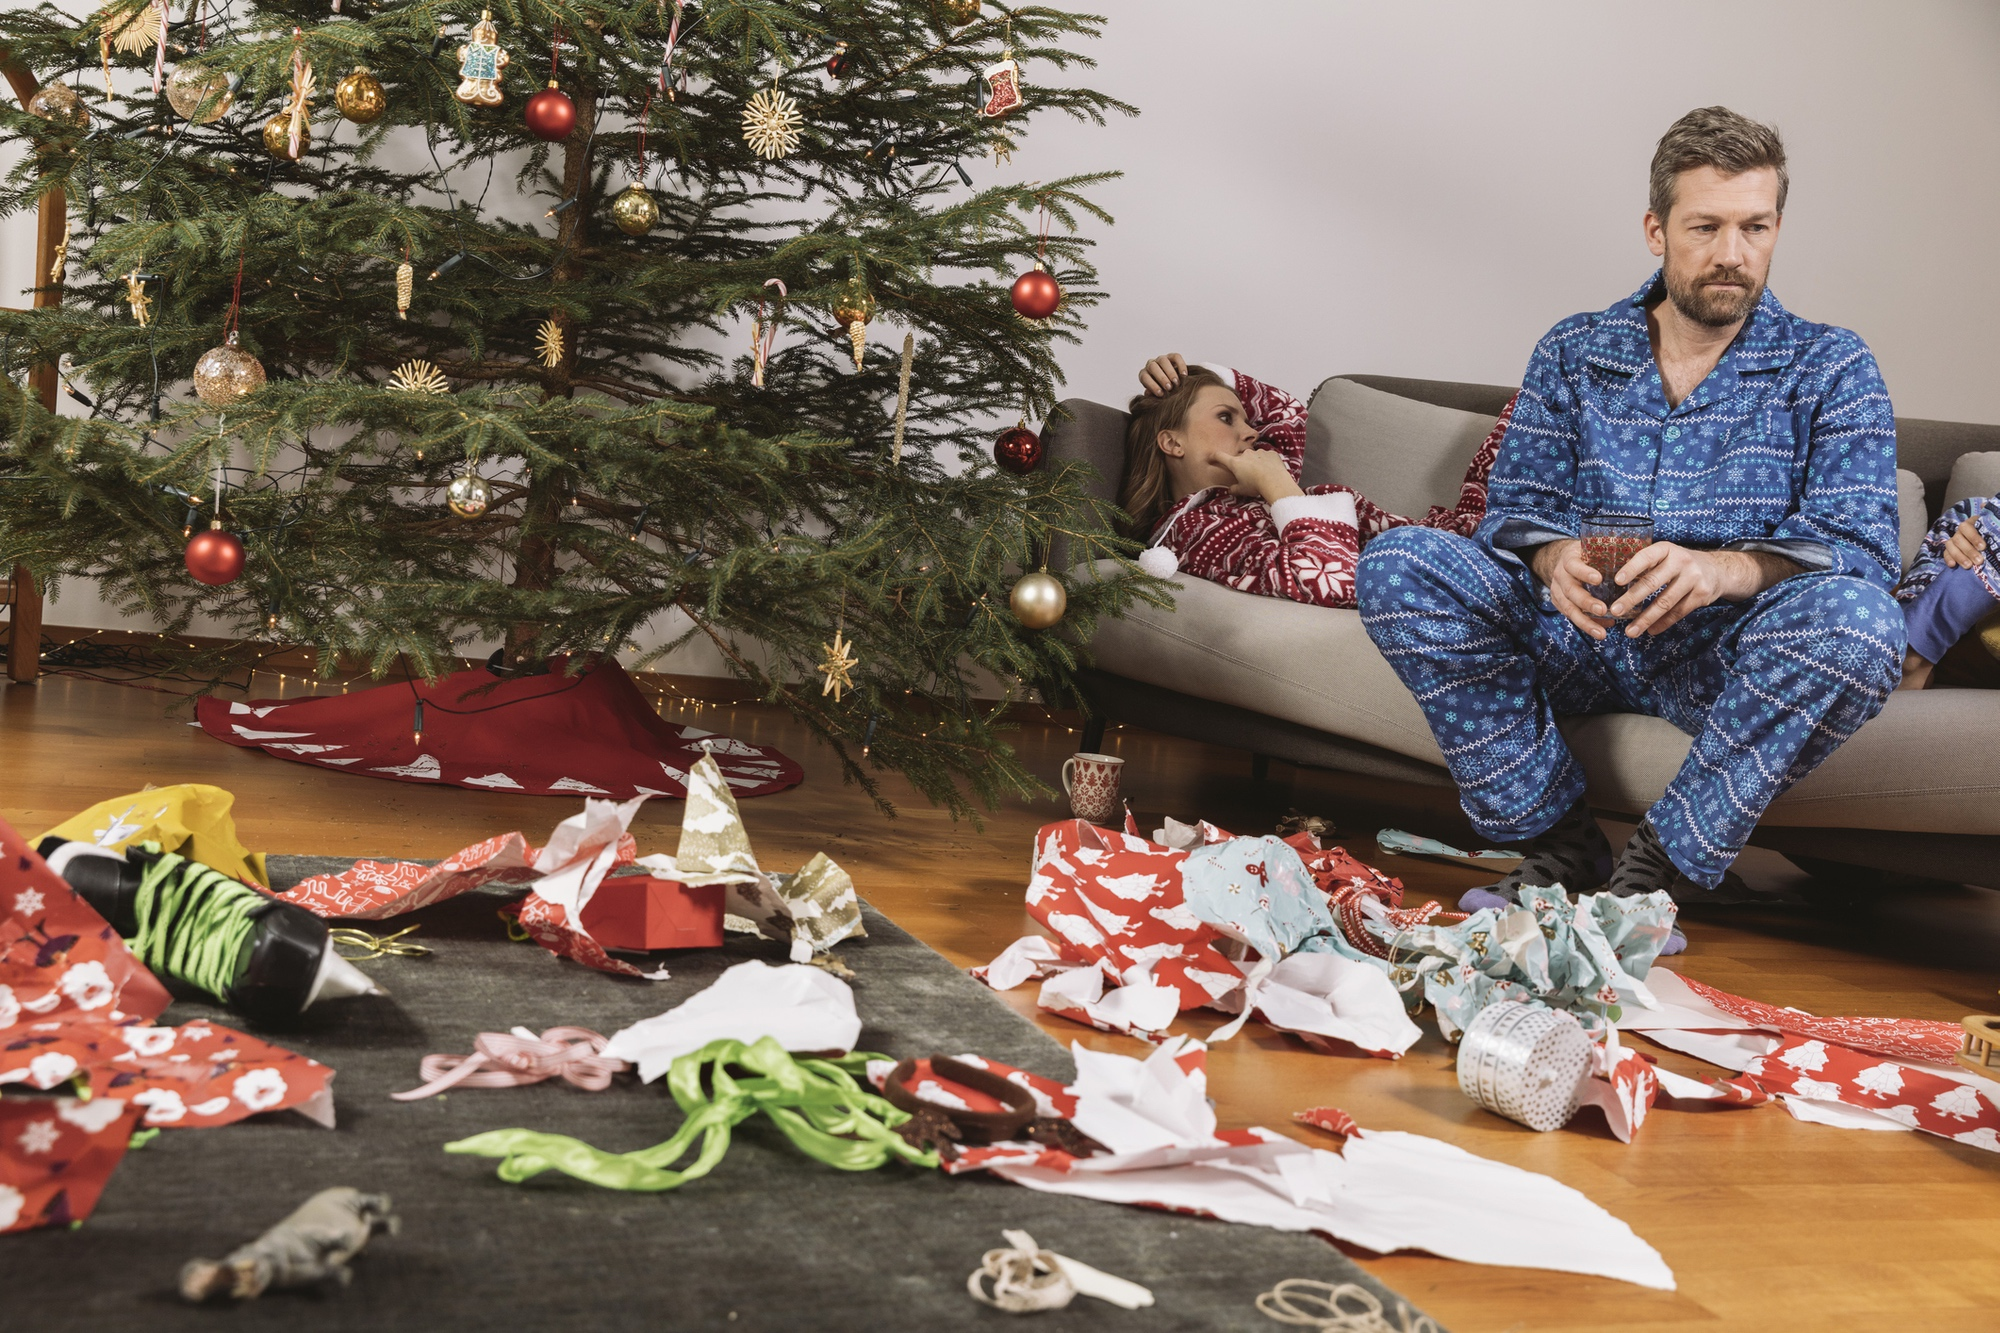 Unhappy man sitting next to unhappy wife on Christmas morning